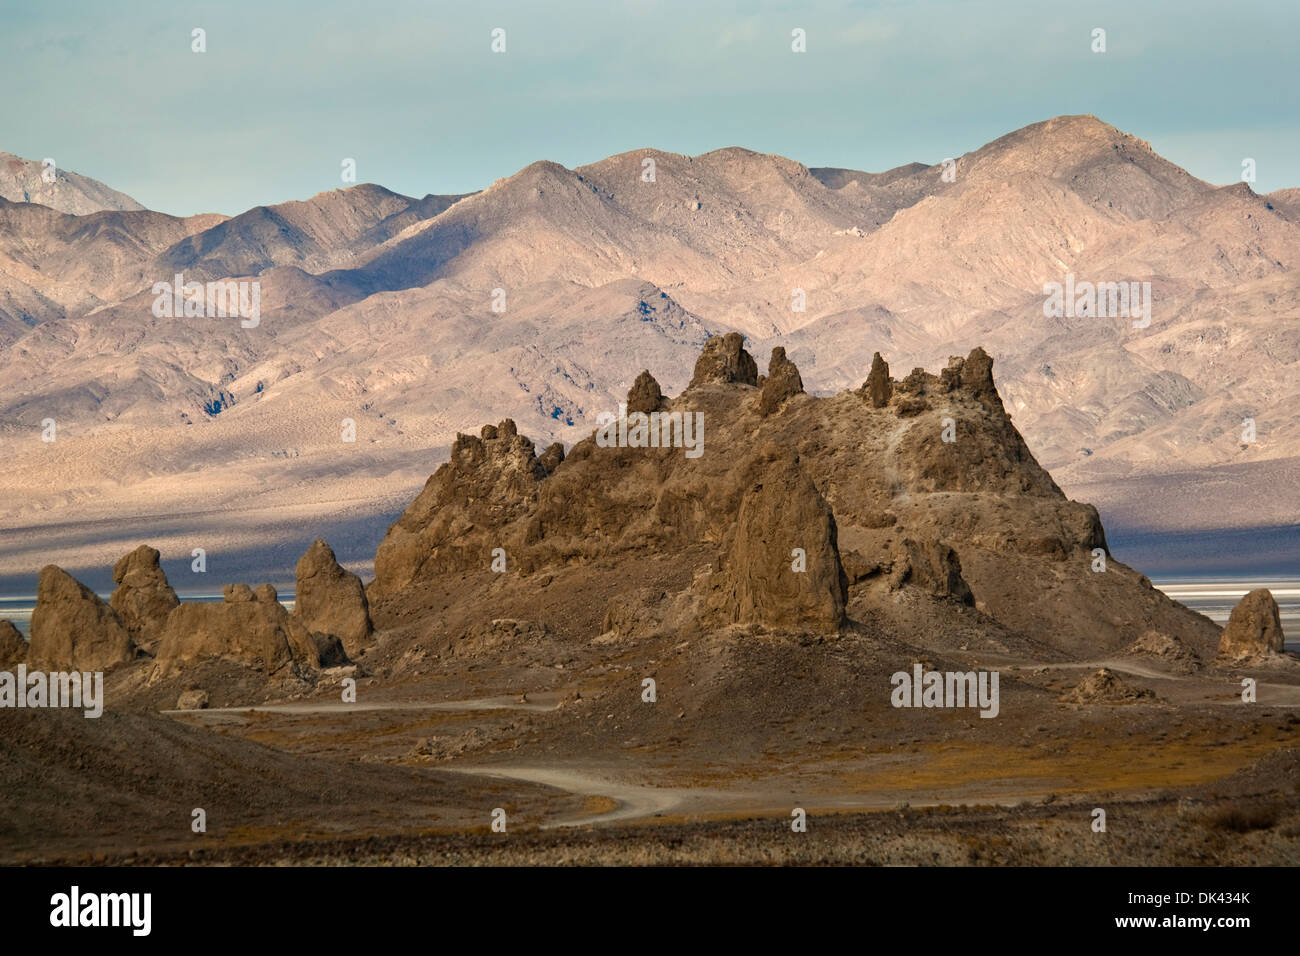 Tufa rock formations at the Trona Pinnacles, California - Stock Image